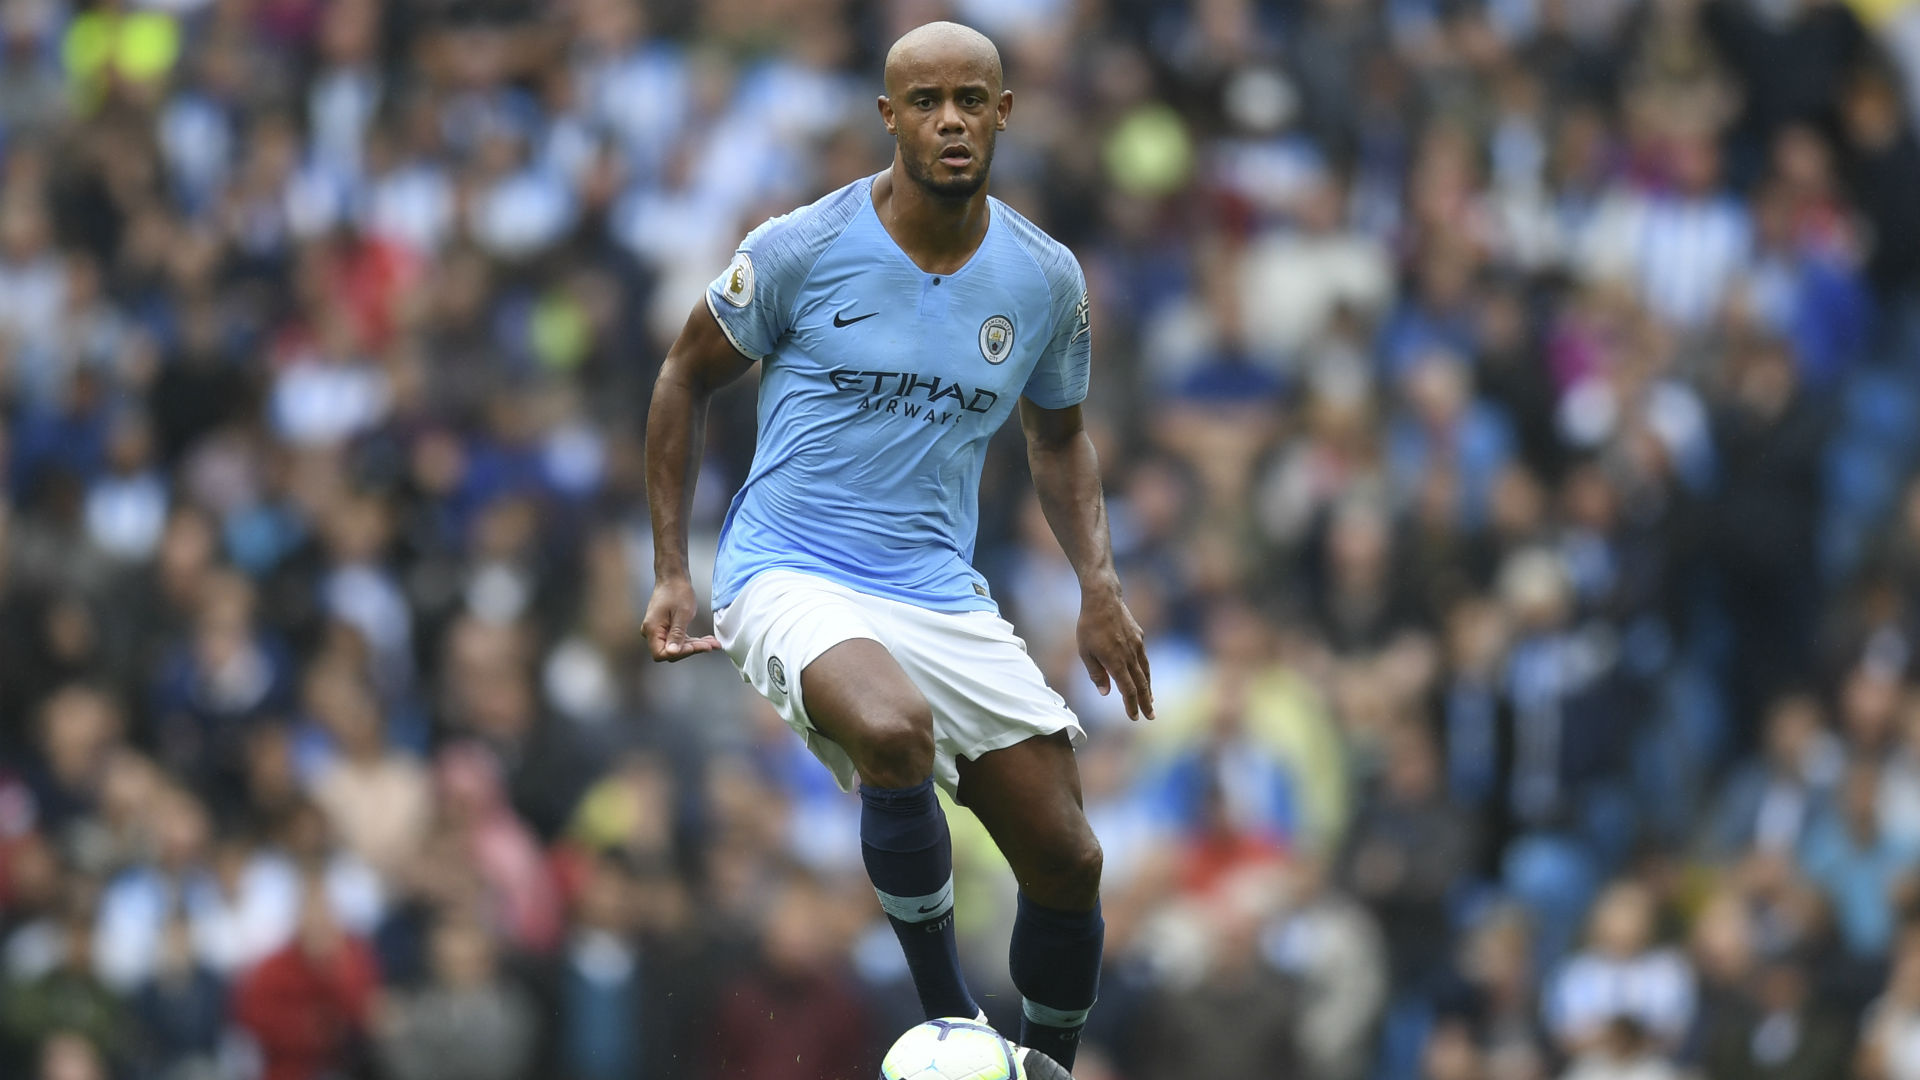 Vincent Kompany 'relaxed' about soon-to-expire Manchester City contract